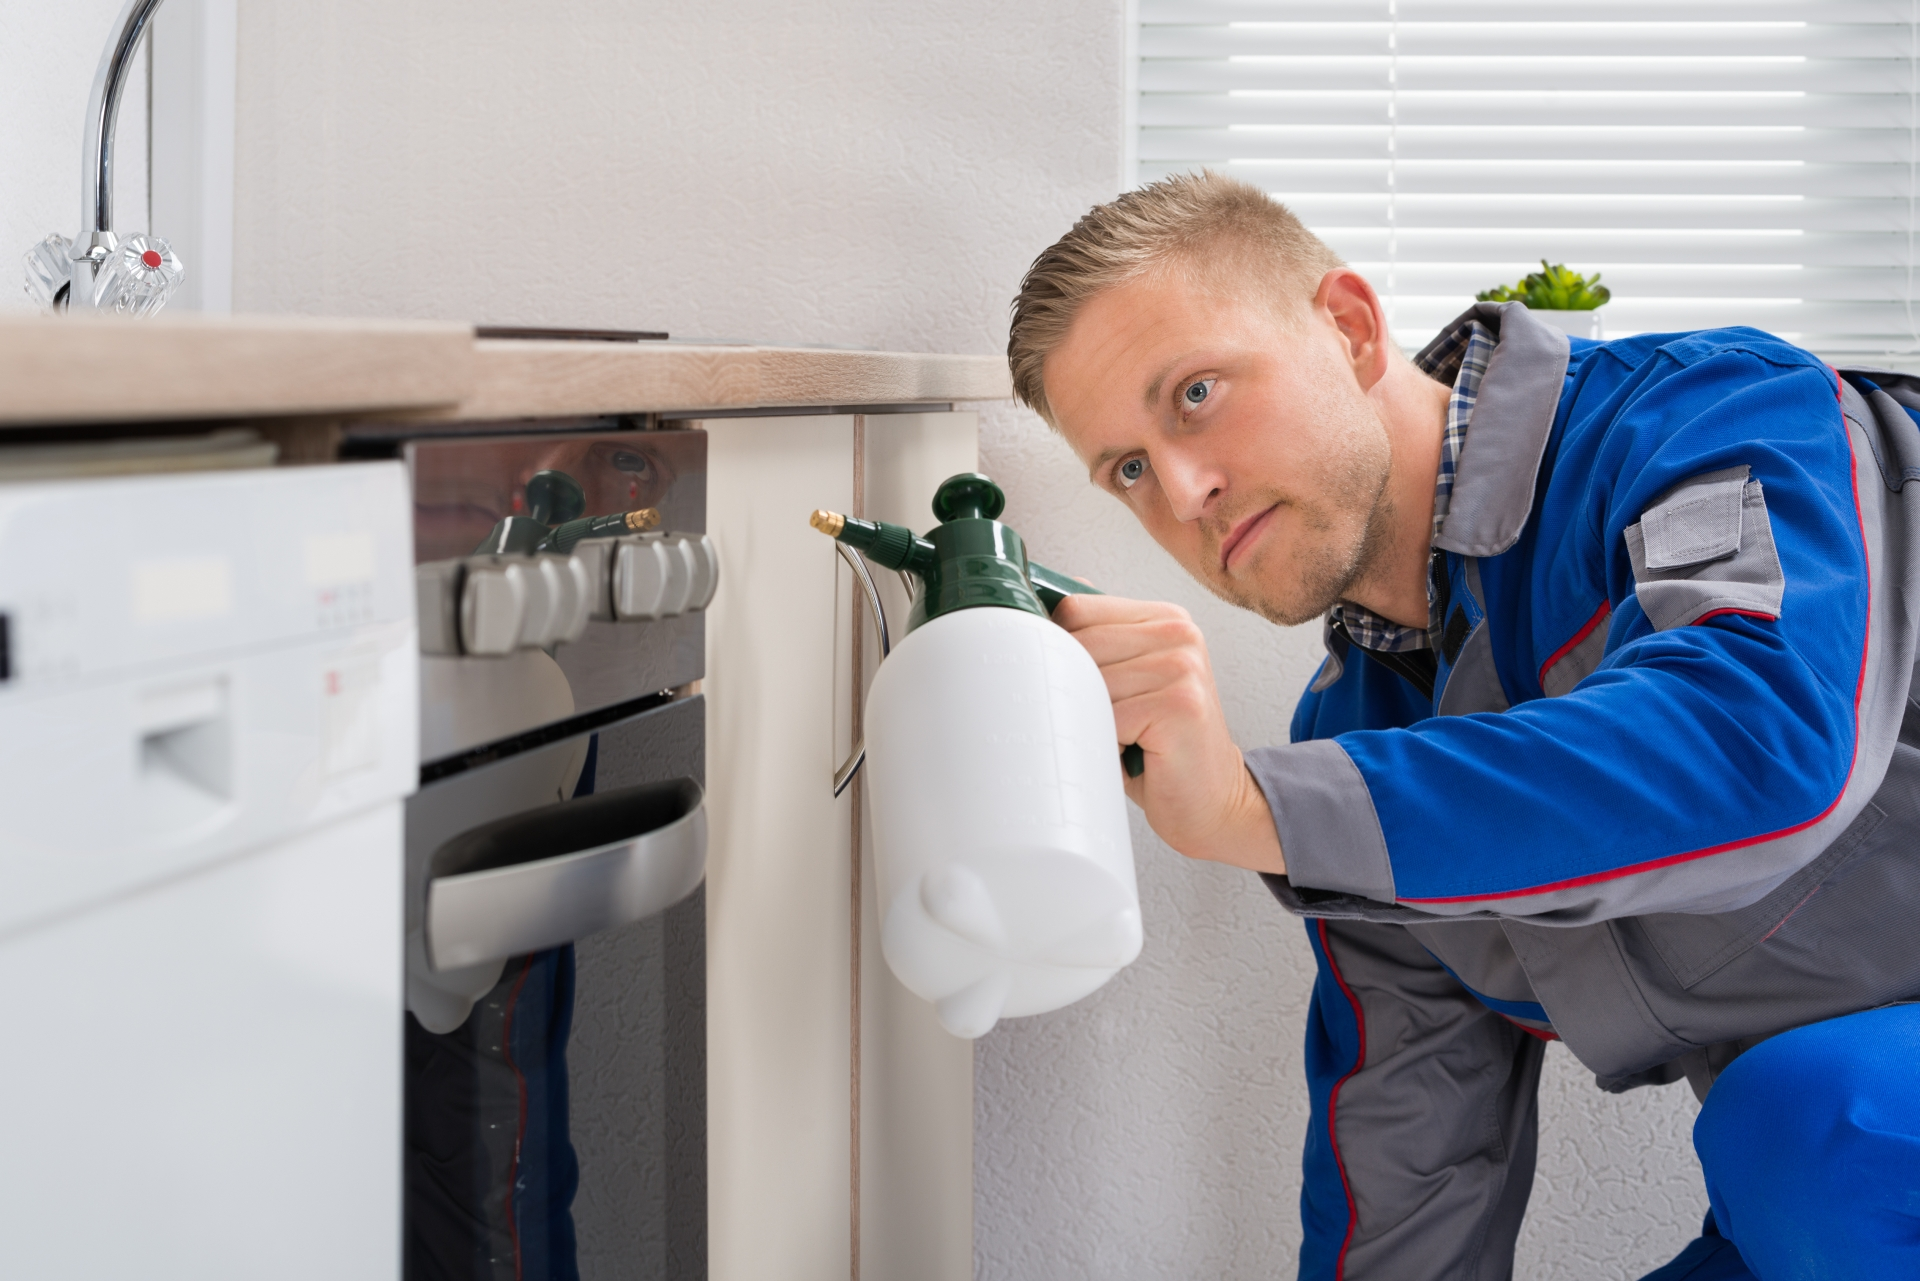 Pest Inspection, Pest Control in South Woodford, E18. Call Now 020 8166 9746